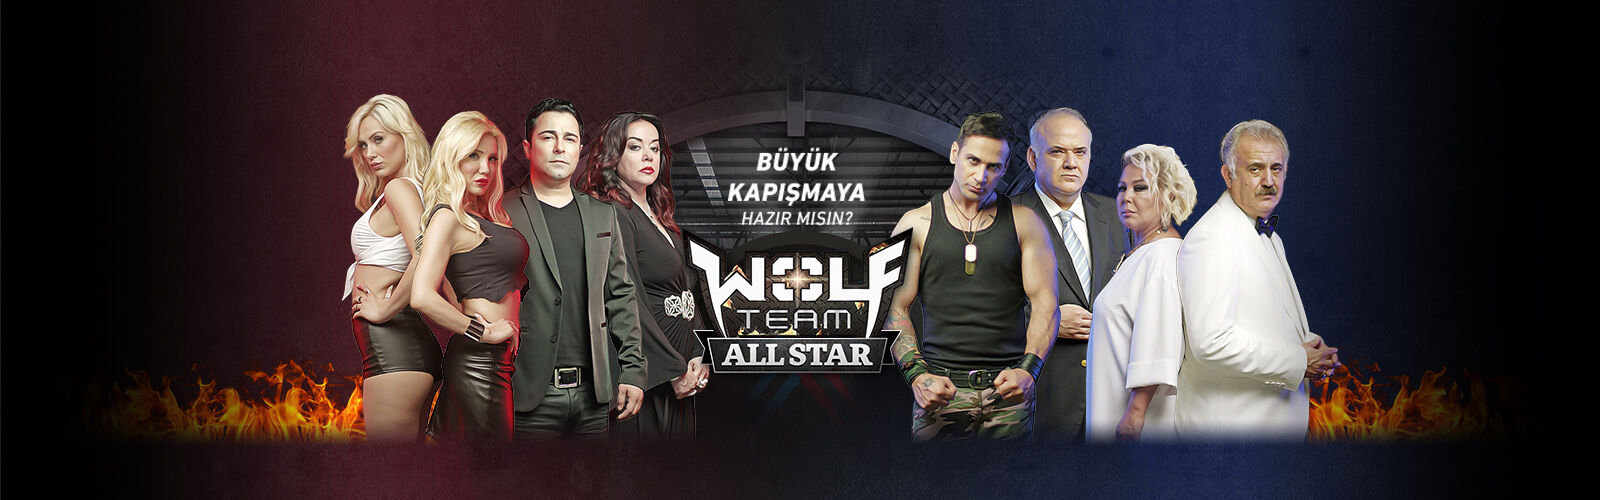 Wolfteam All Star